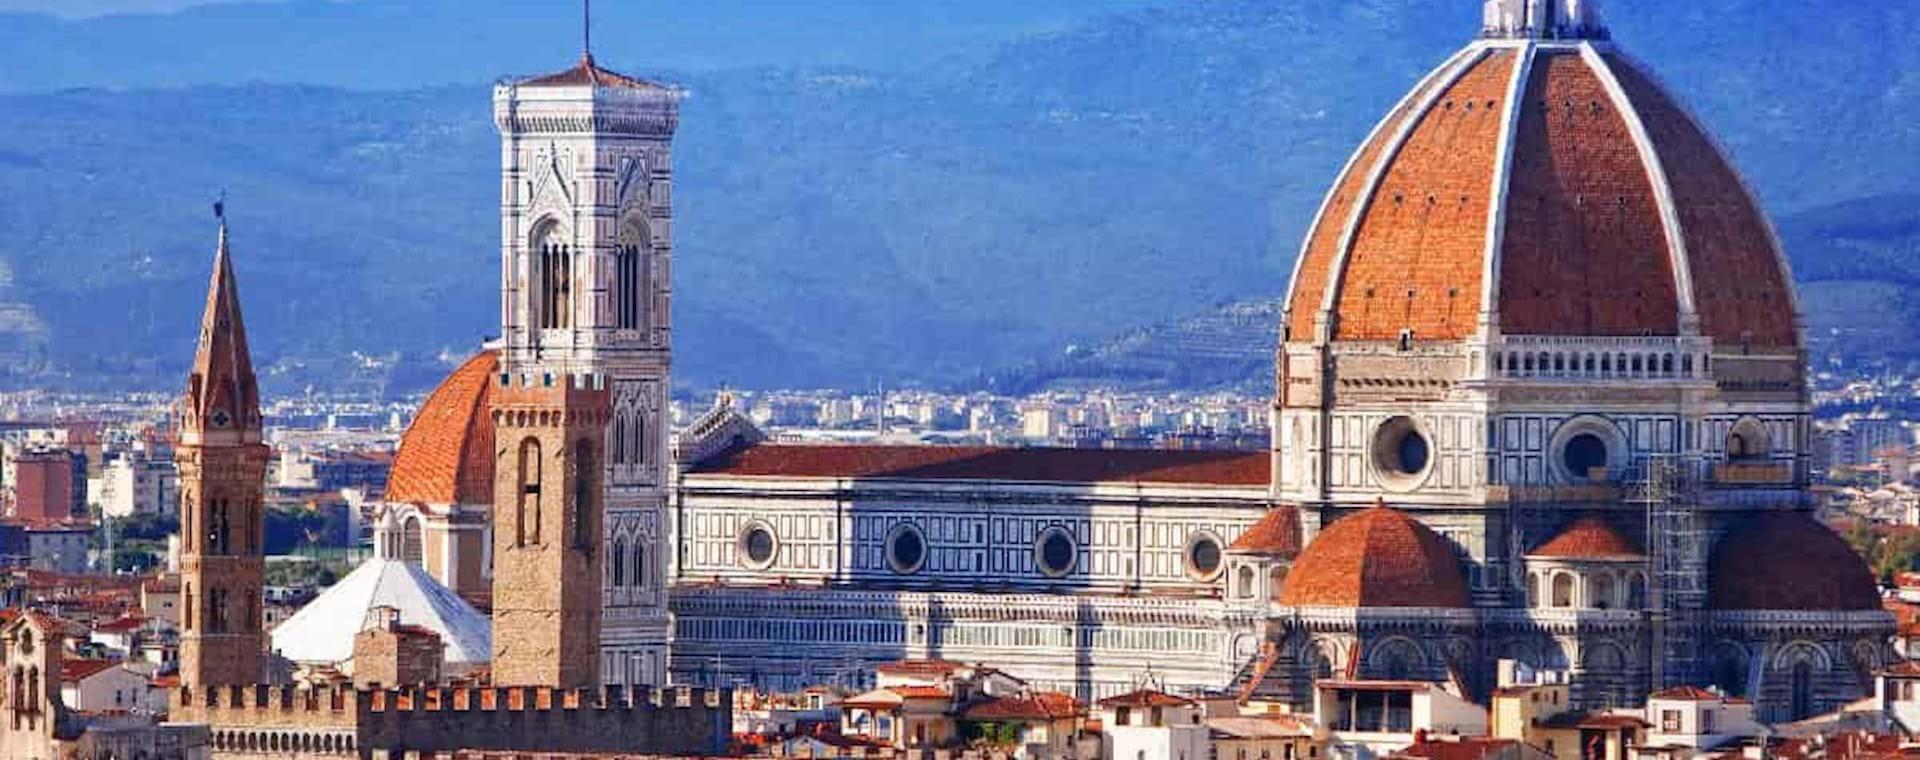 Panoramic view of the Cathedral of Santa Maria del Fiore in Florence